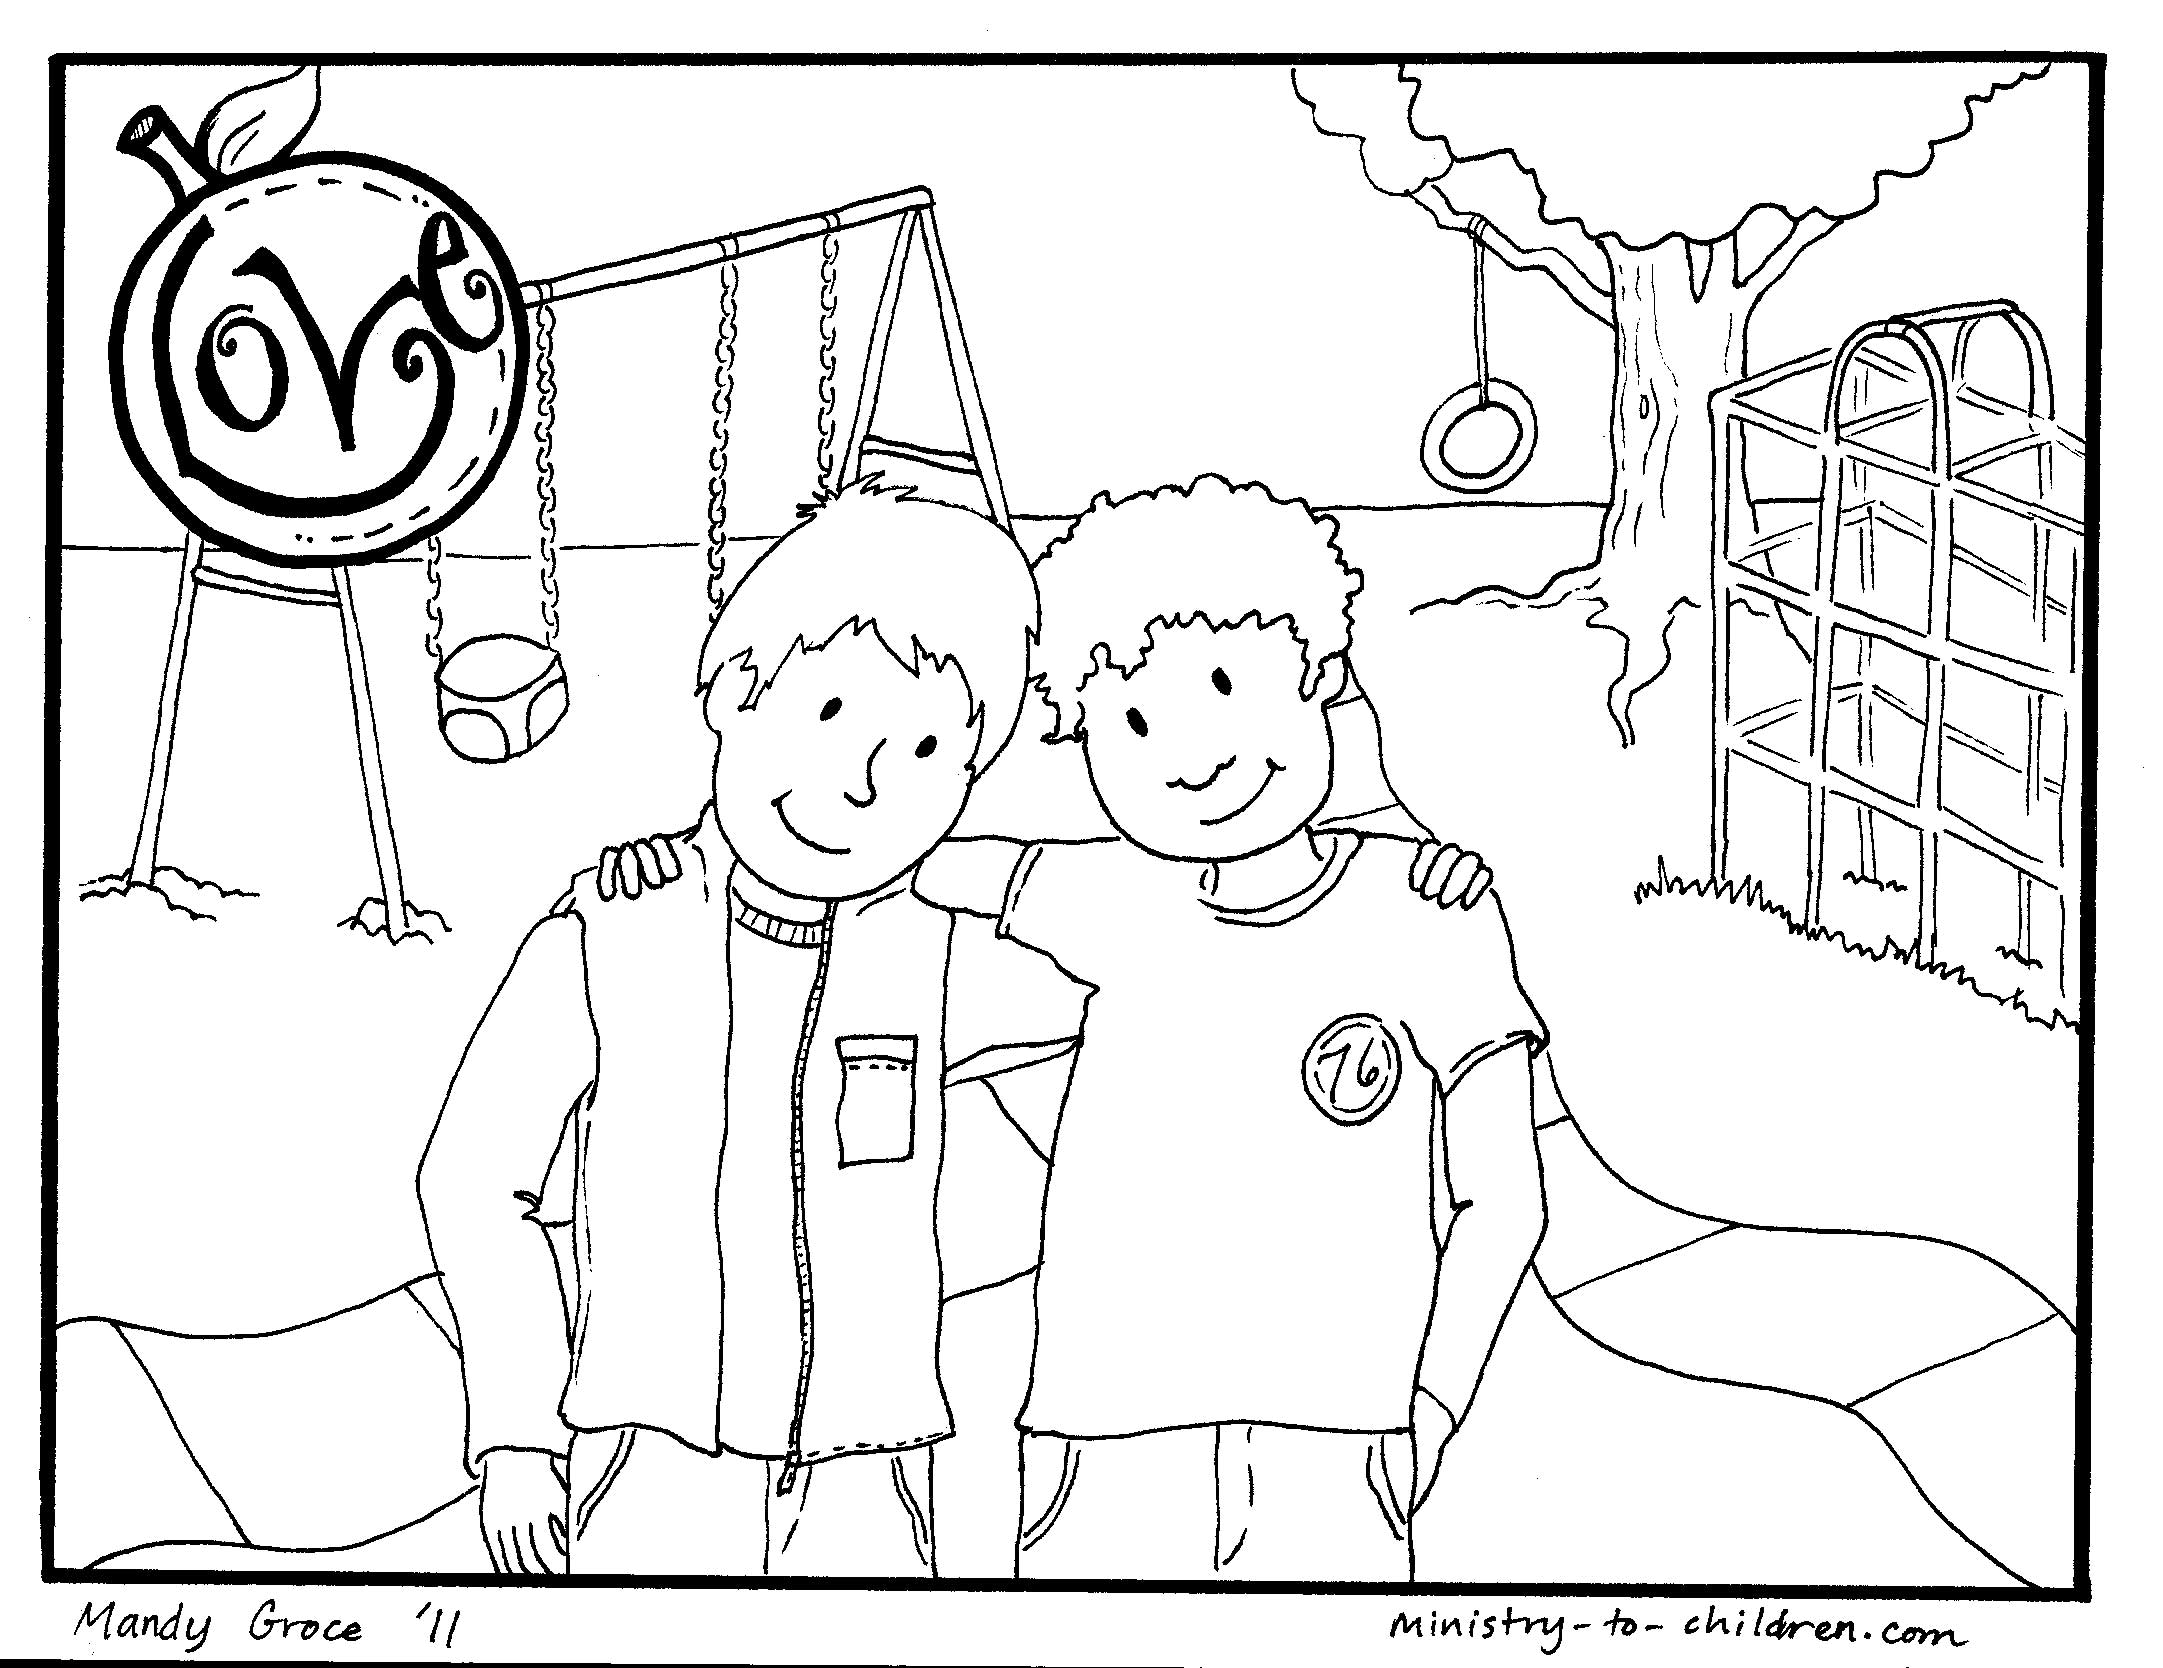 love one another coloring page love one another coloring page love coloring pages coloring love one page another